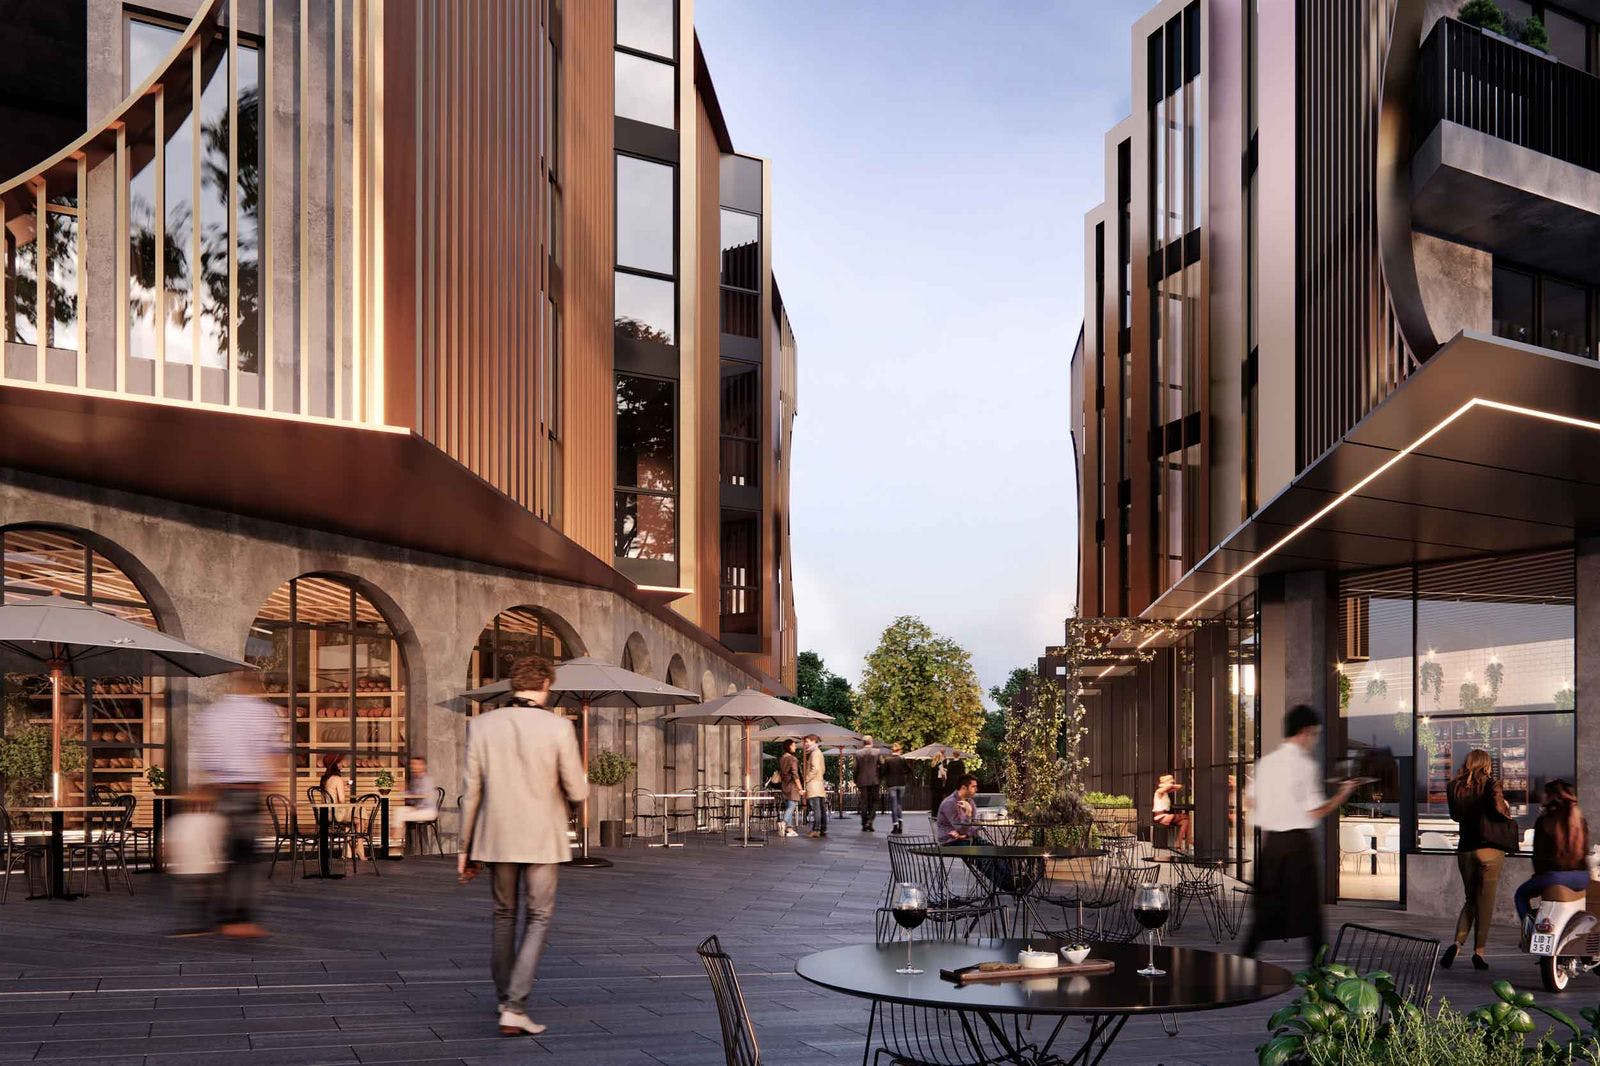 Artist's impression of Artisan Food District